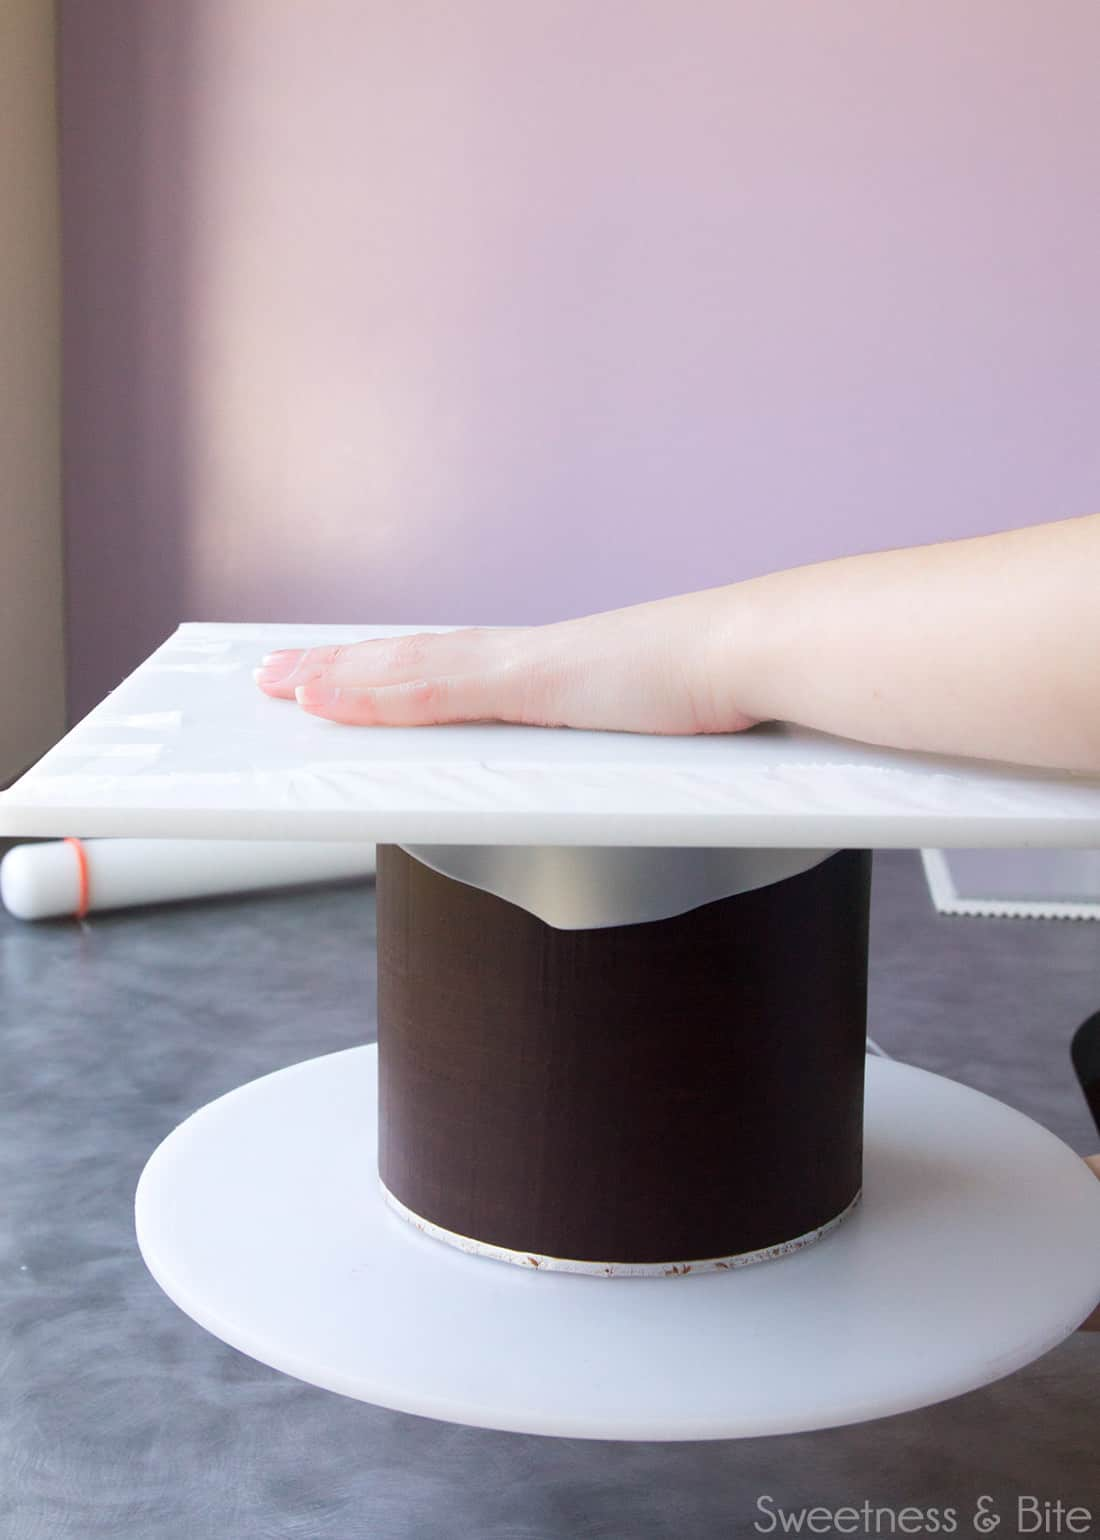 Recipes For Chocolate Ganache For Cake Under Fondant